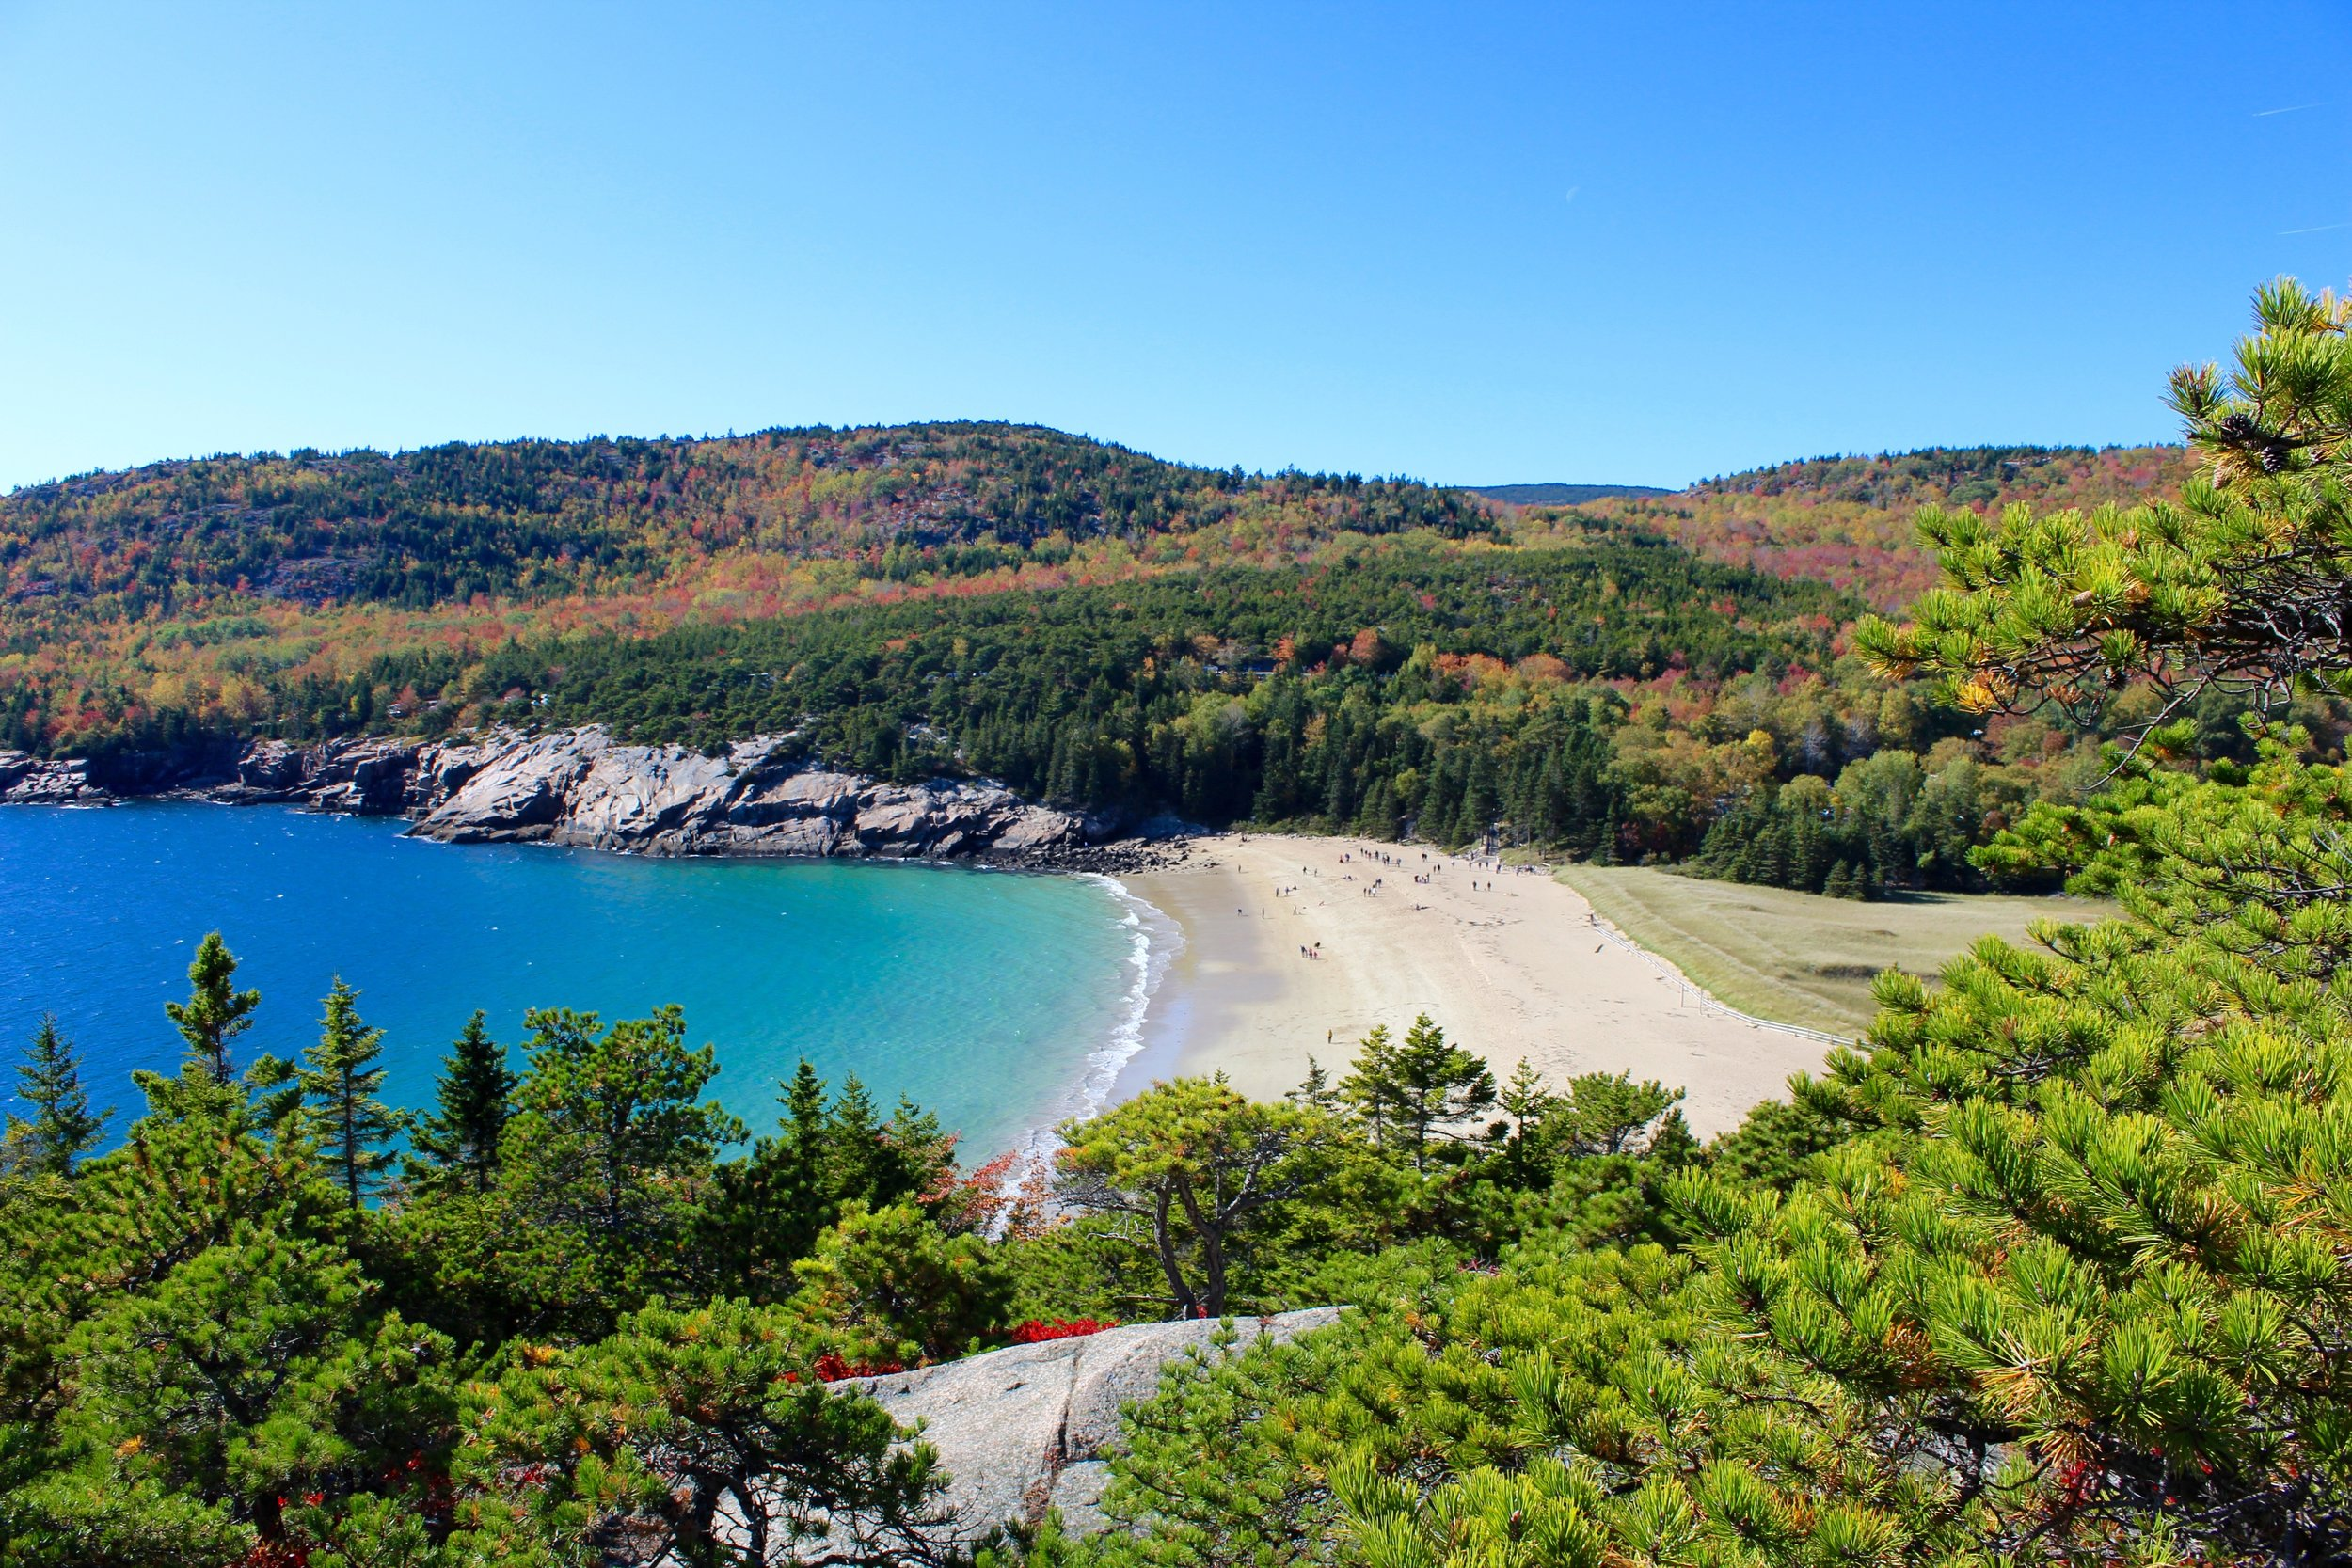 From the edge of Great Head in Acadia National Park in Bar Harbor, Maine we are rewarded with the view of Sand Beach and the mountains of Acadia. The green of the evergreen mixed with the fall colors of the deciduous trees complete the frame of this photo.